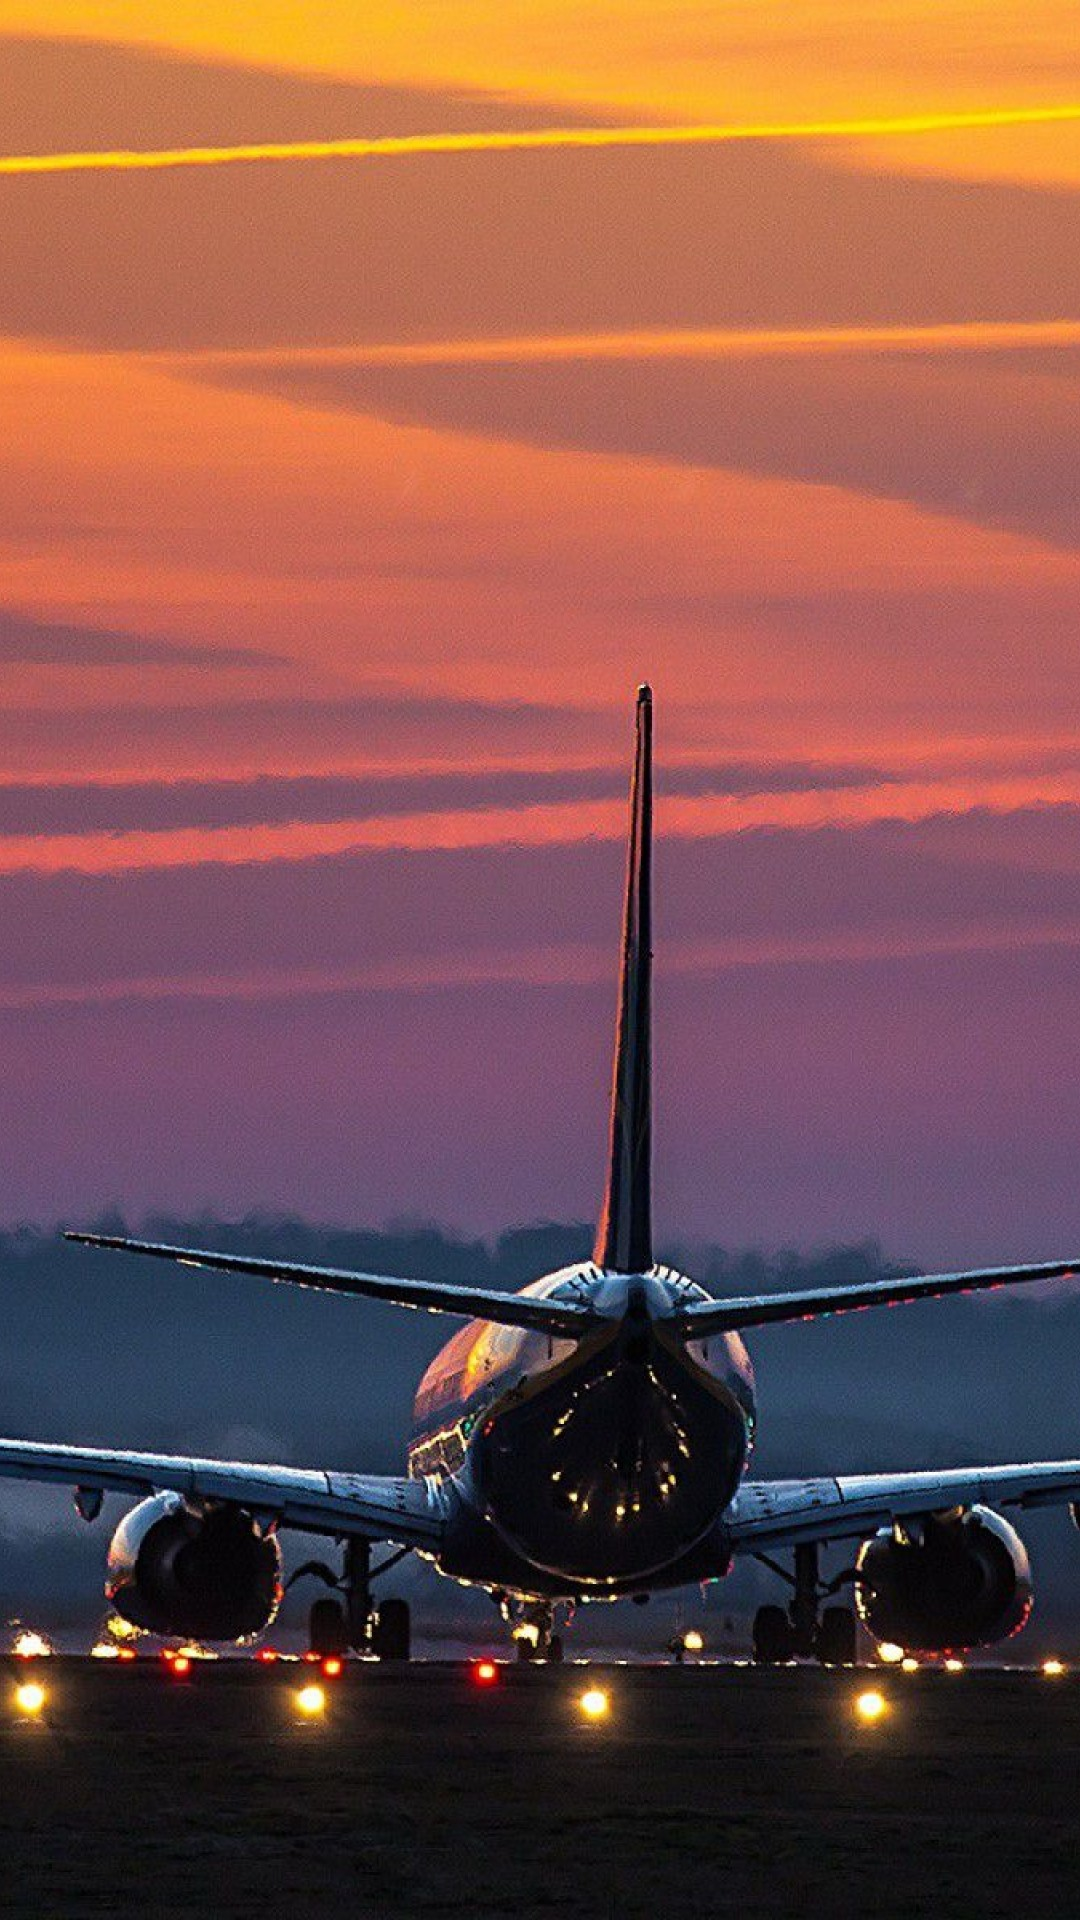 Airplane Wallpaper For Iphone X The Best And Latest - Iphone X Background Airplane - HD Wallpaper